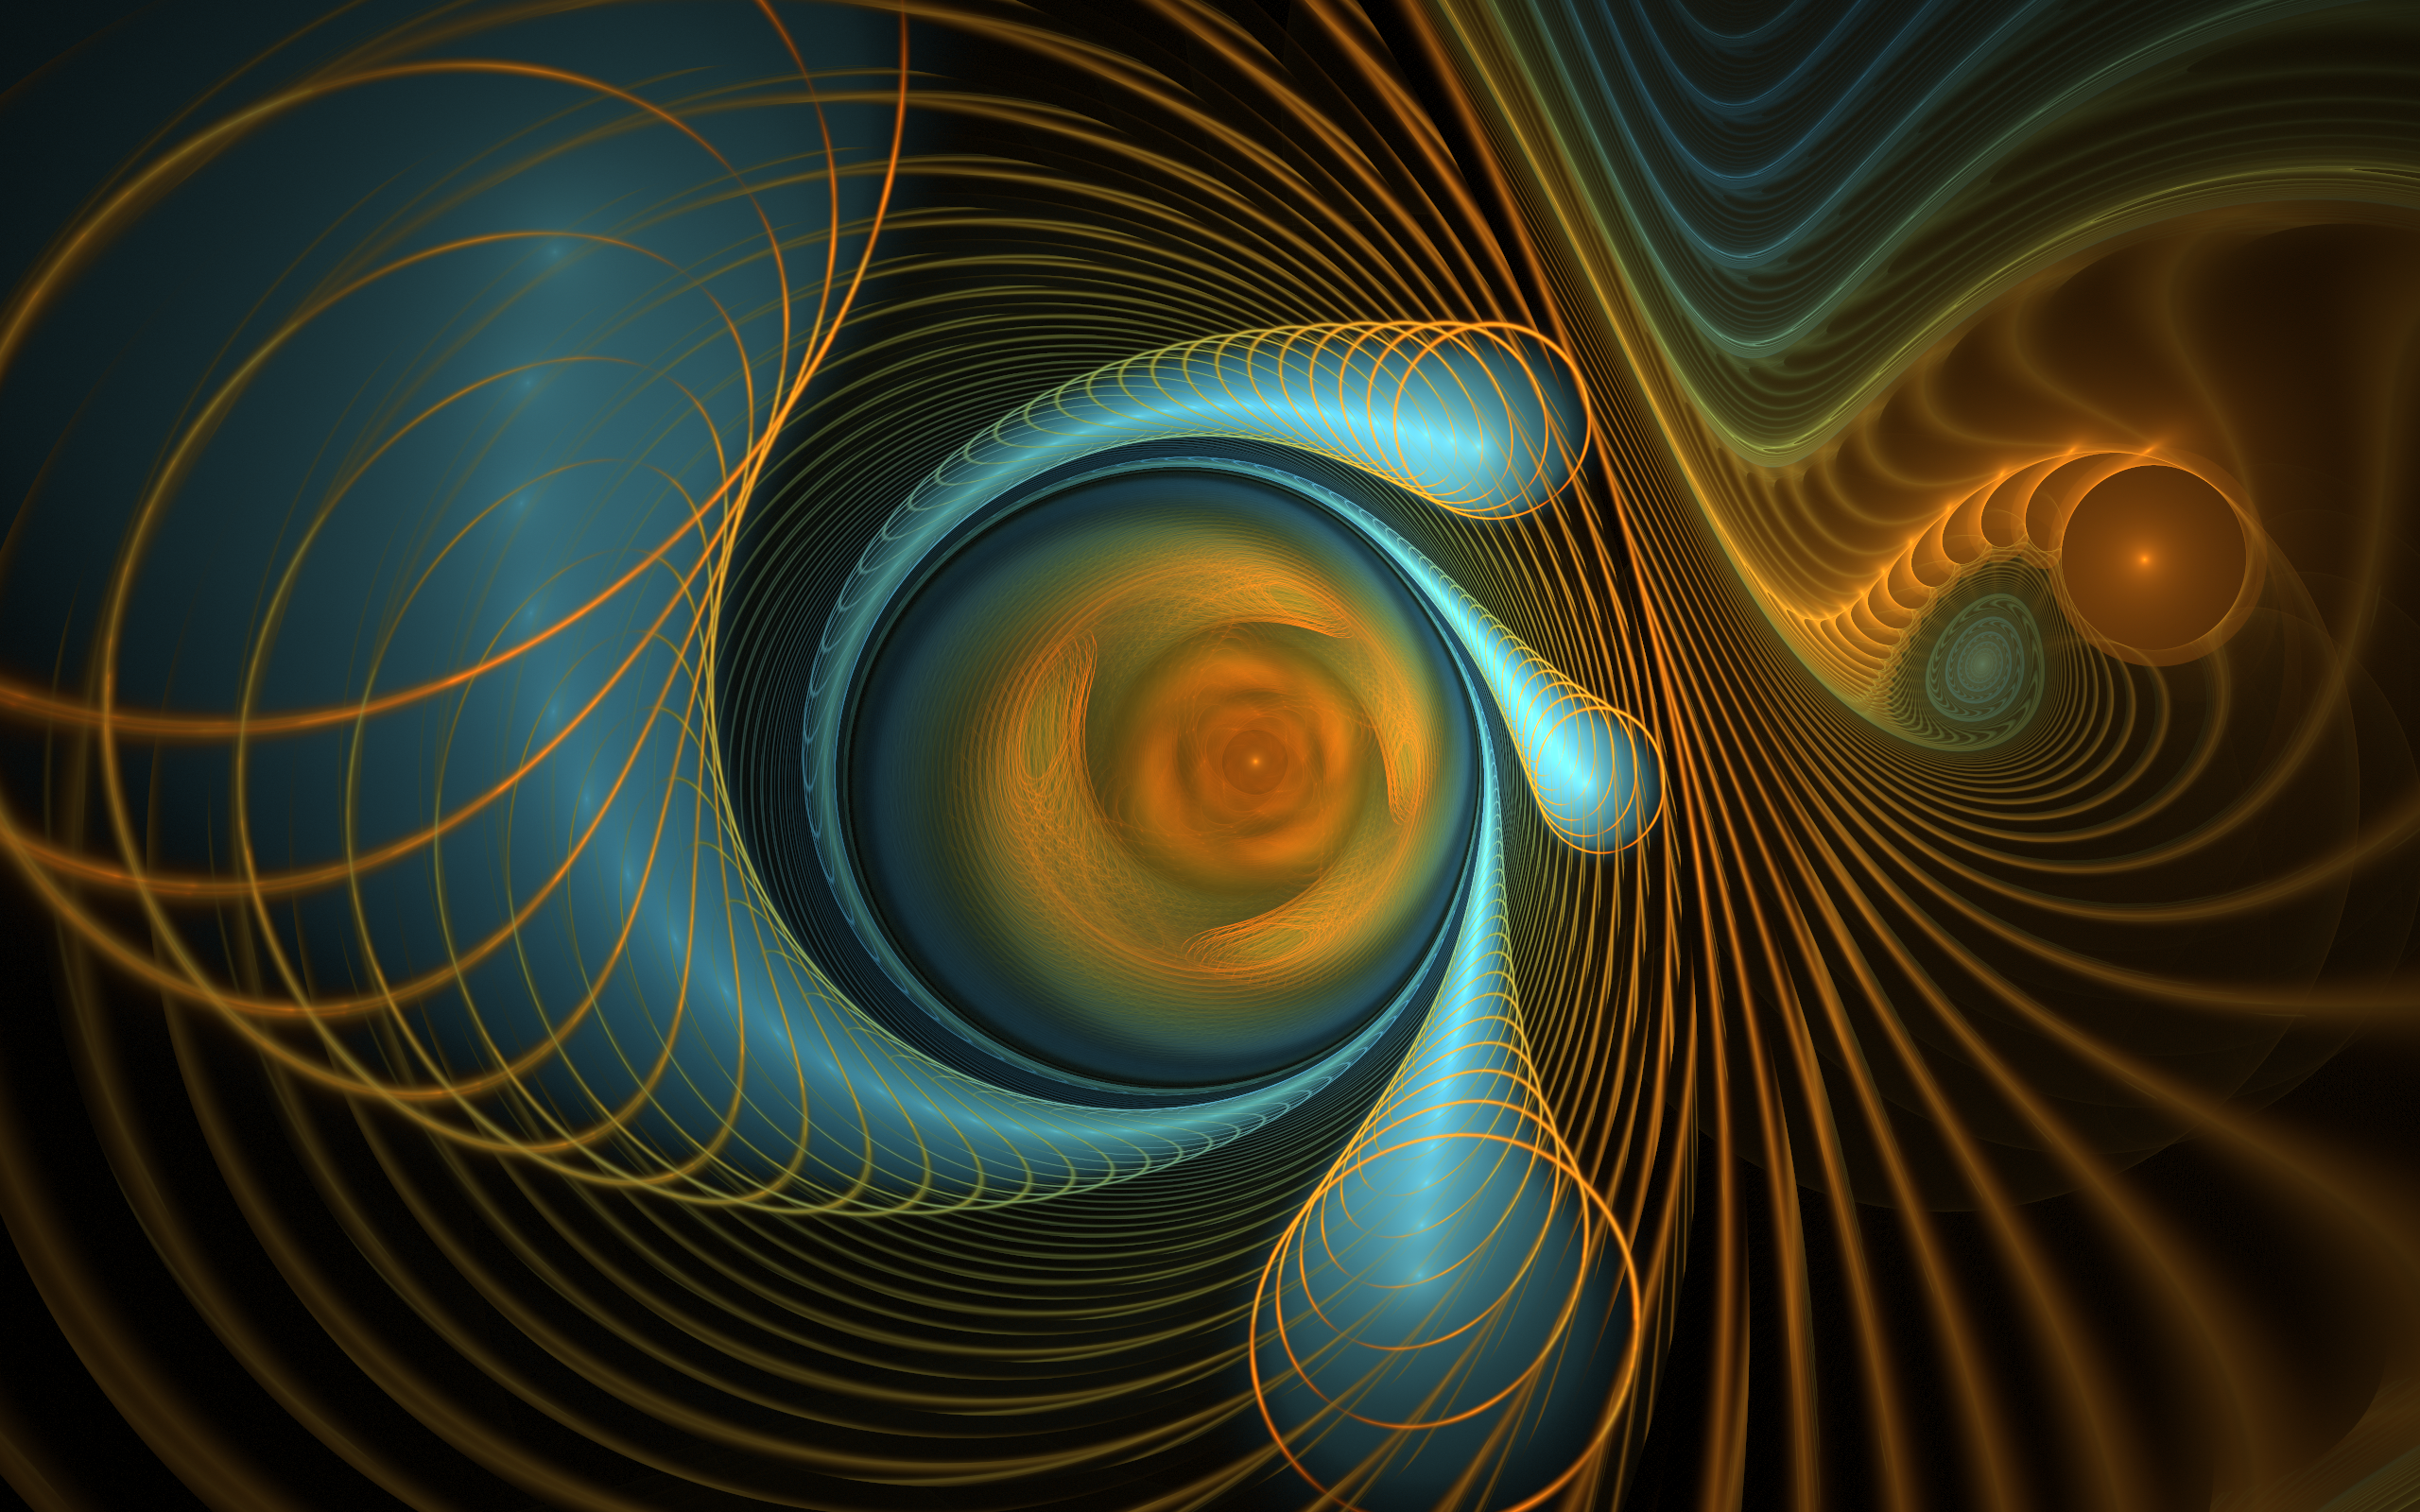 fractal wallpapers pictures images